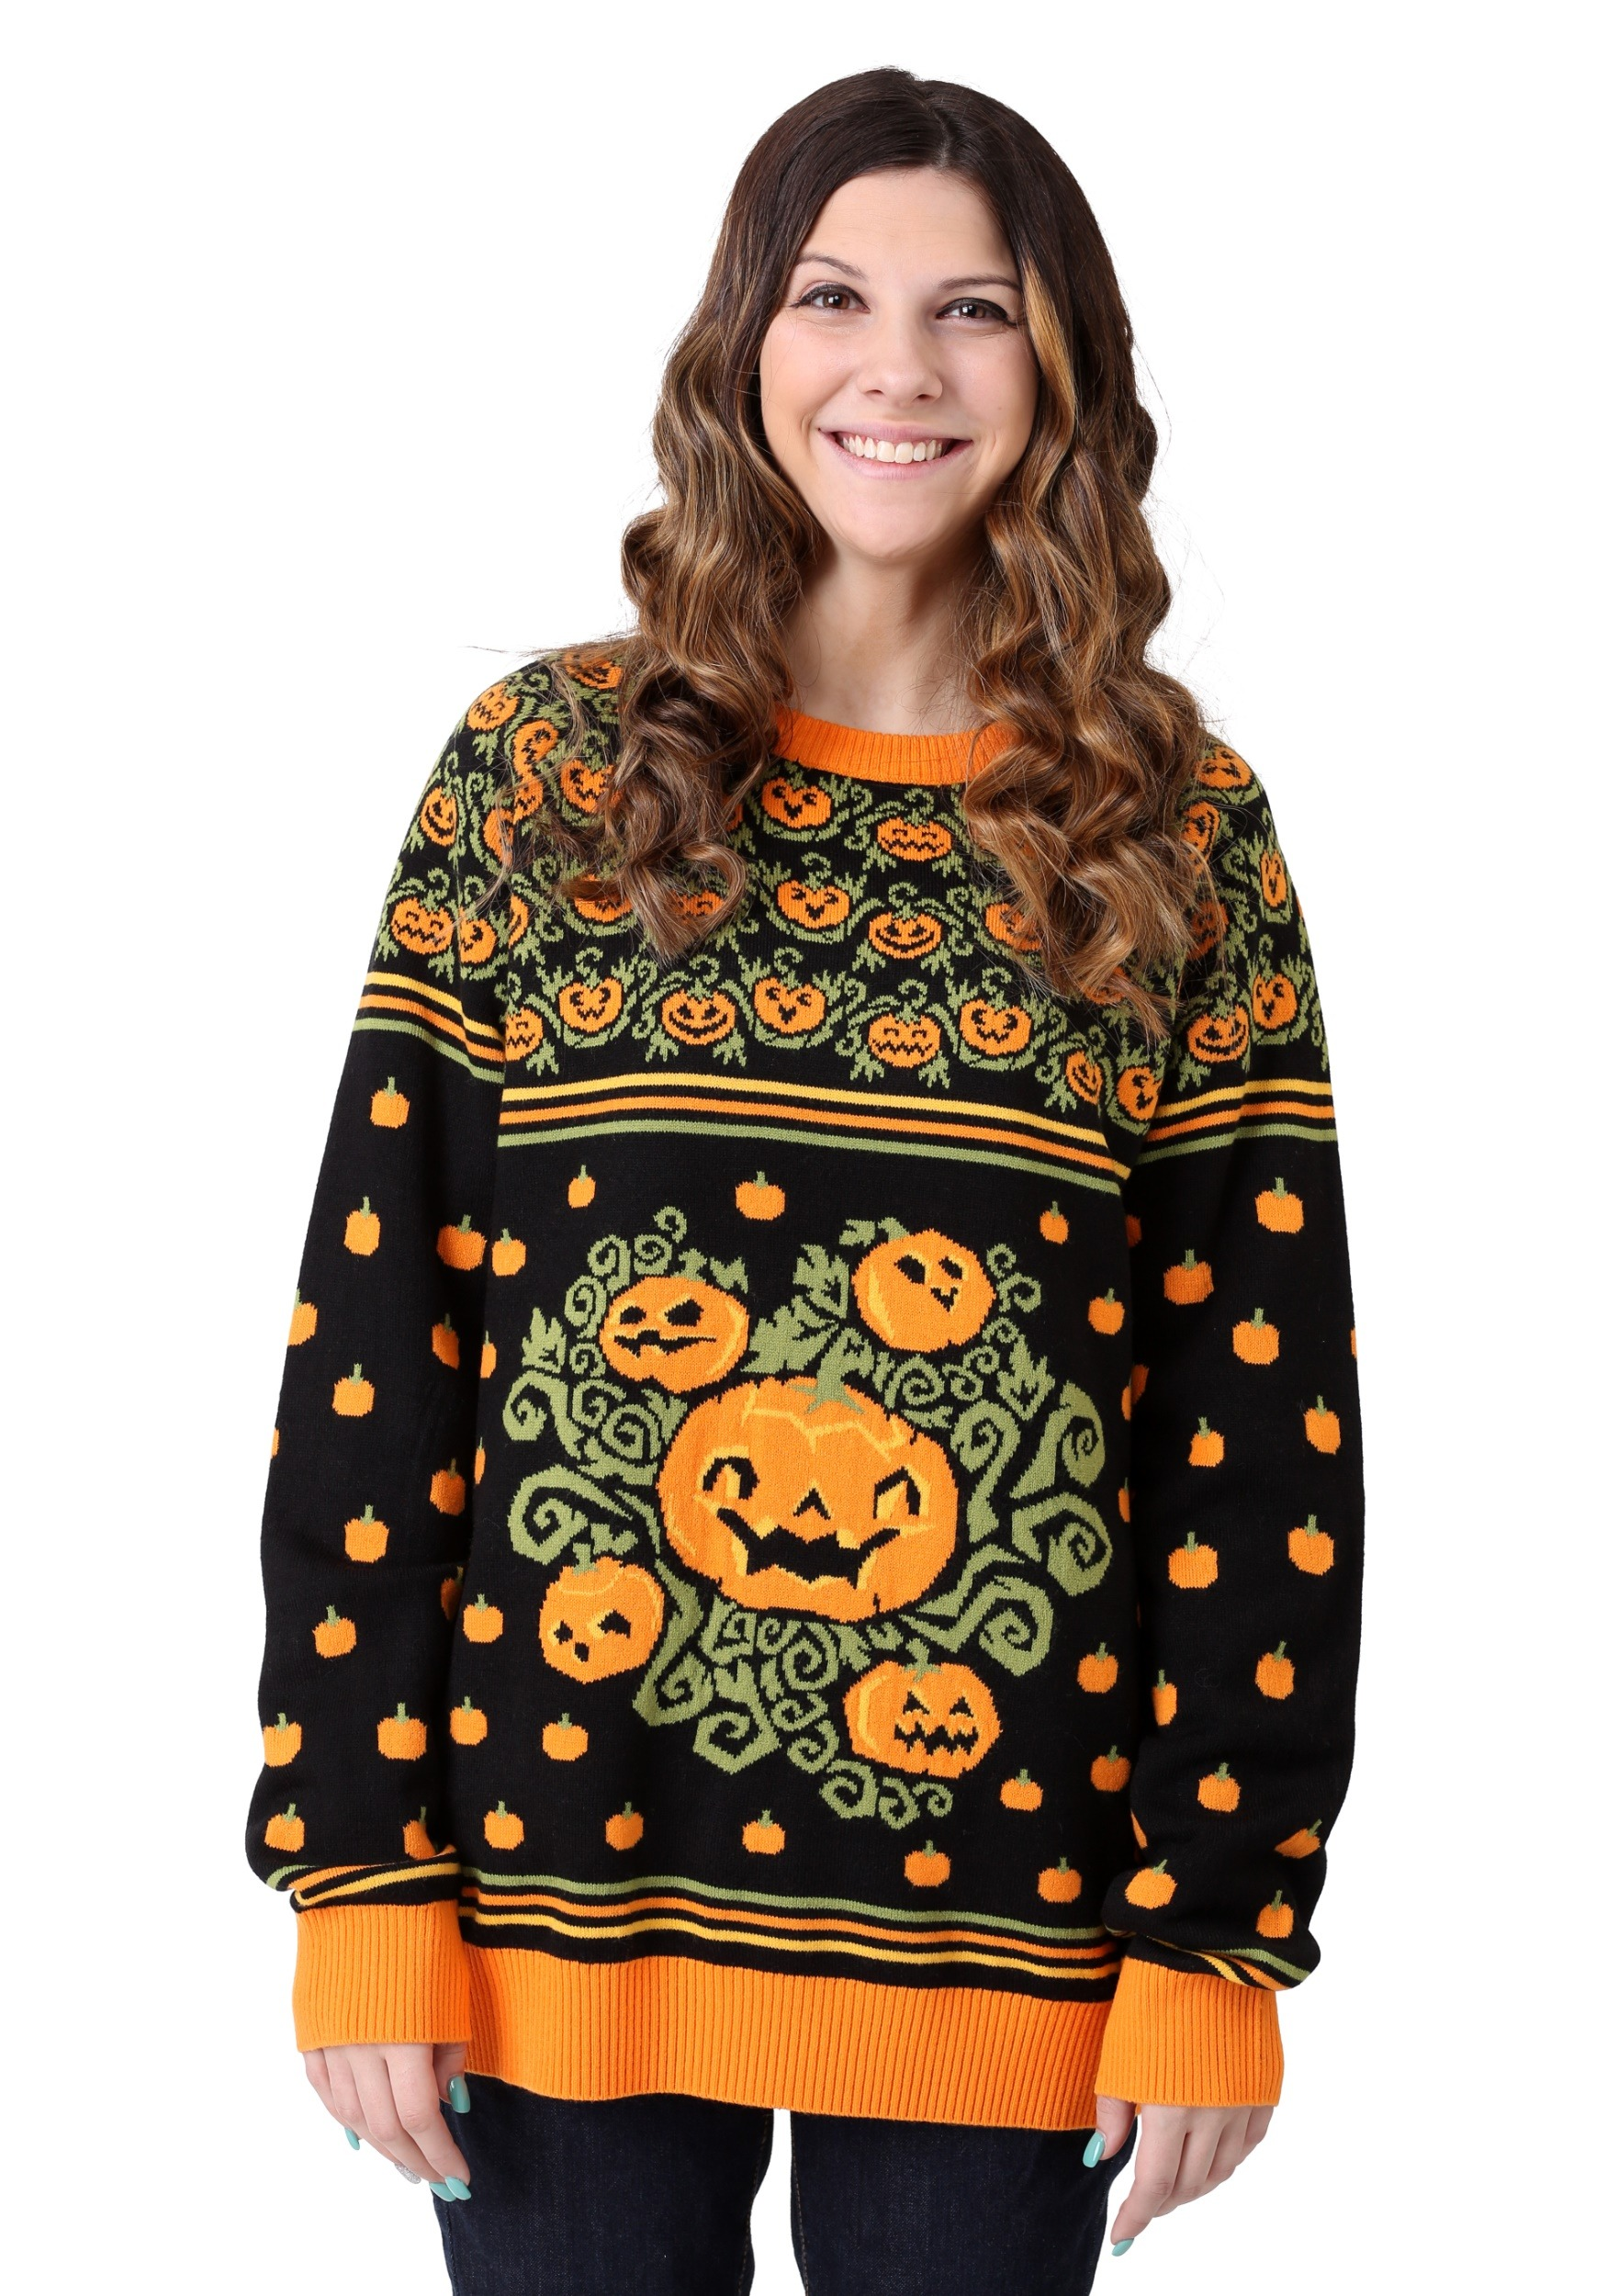 Pumpkin Patch Halloween Sweater for Adults   Exclusive